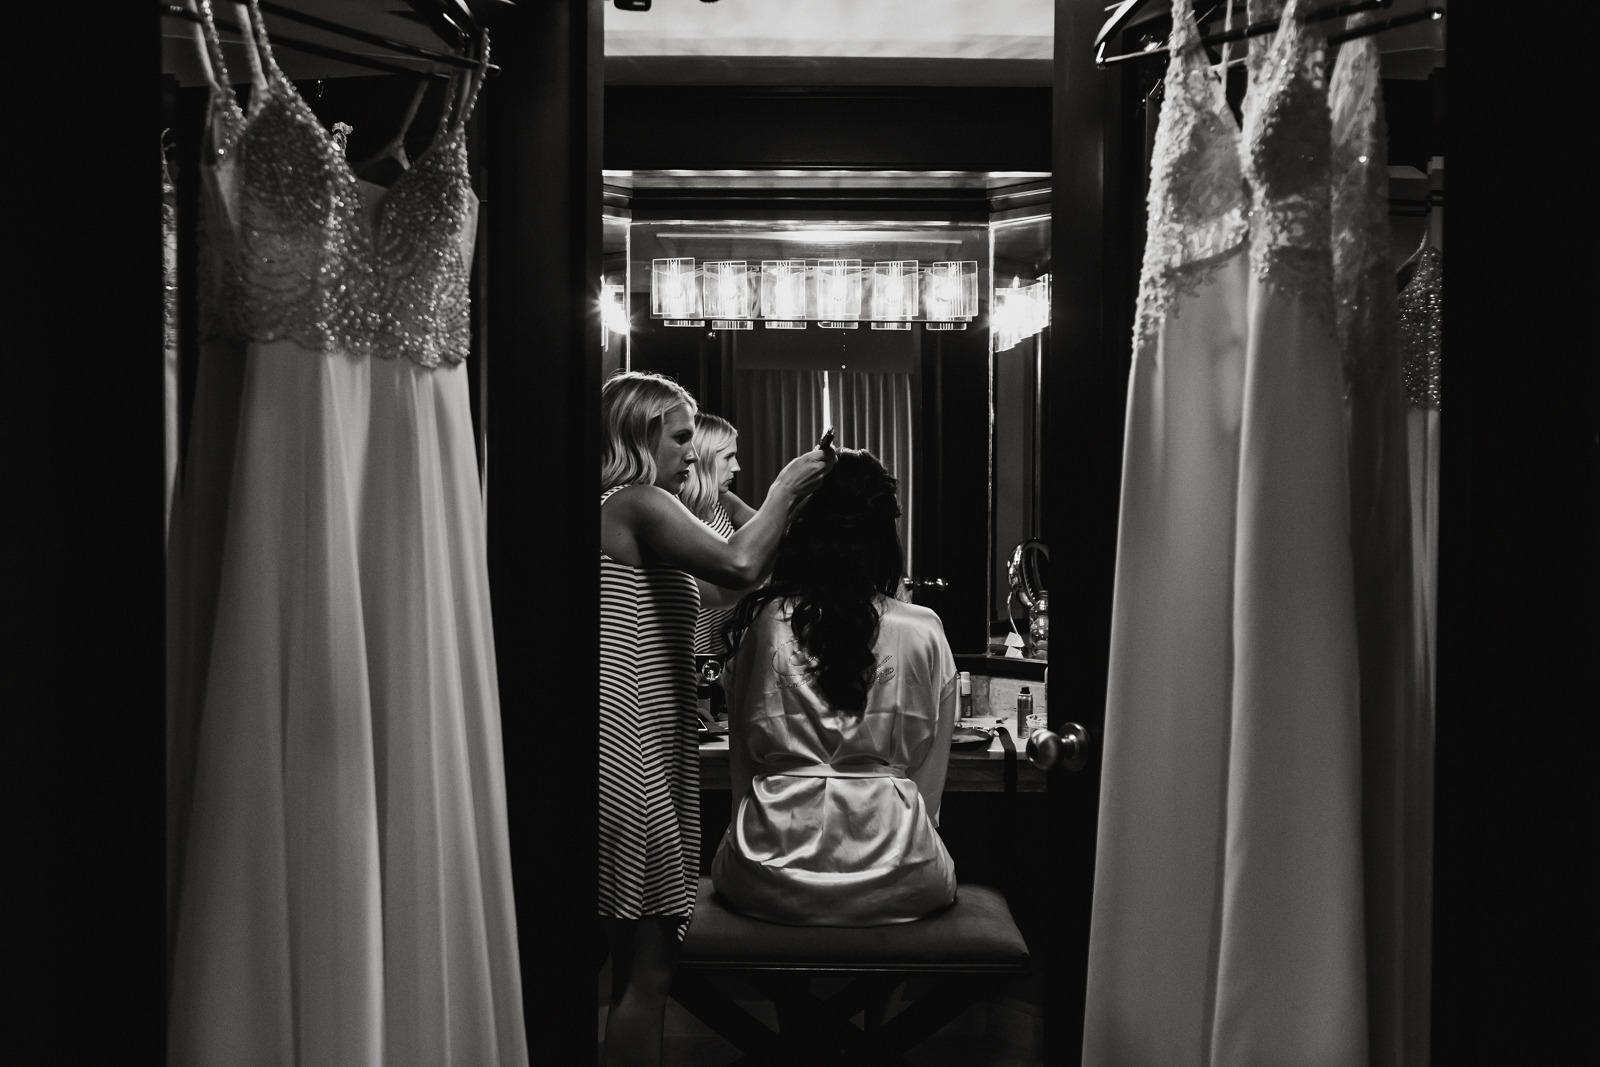 bride-ready-dress-wedding-getting ready-moment-vallarta